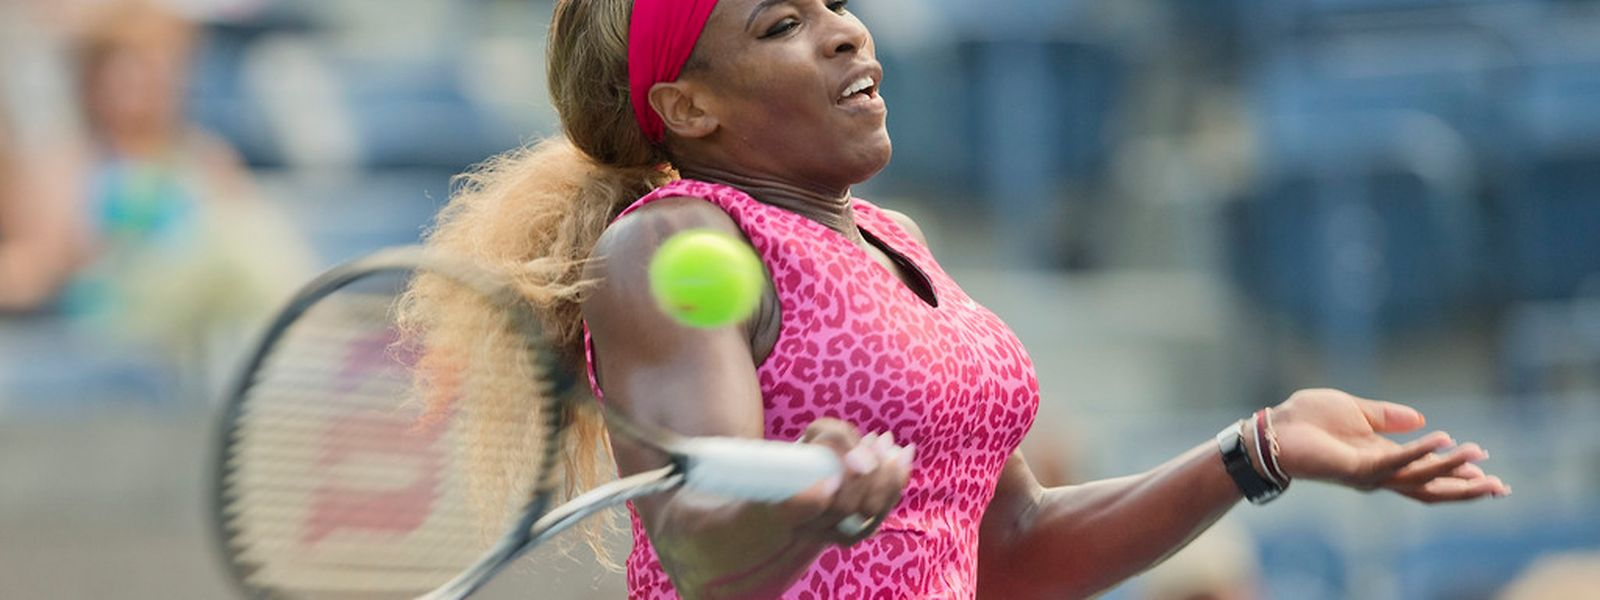 Serena Williams a dominé tout au long de la rencontre.